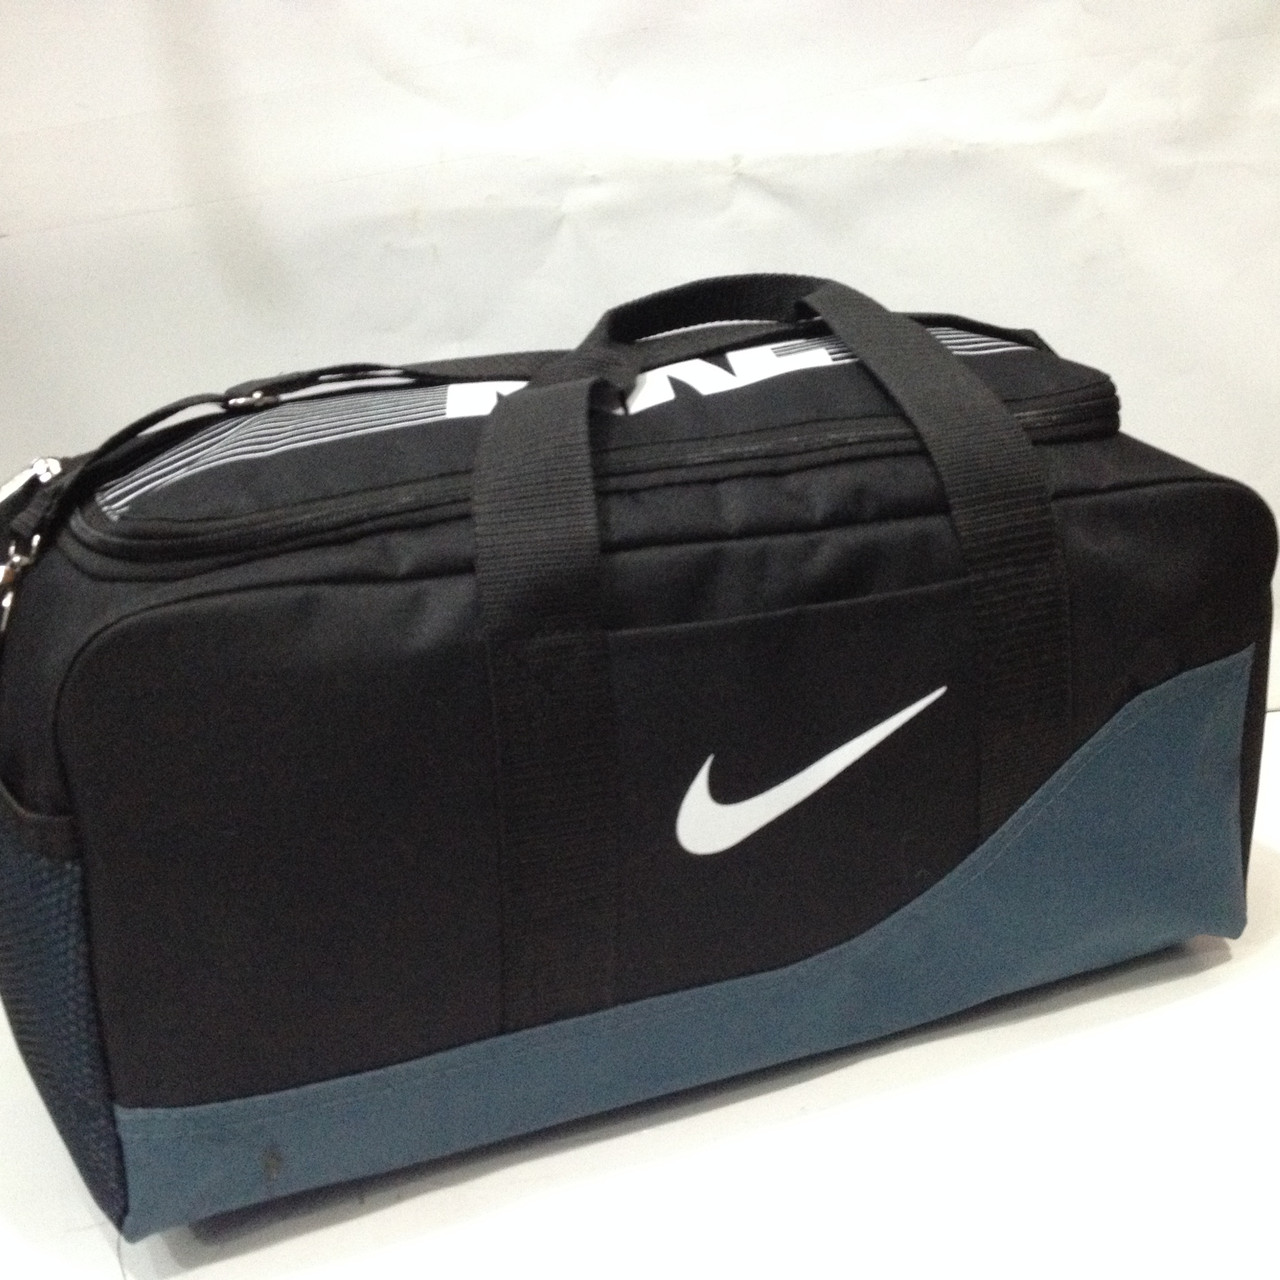 350610ac Сумка спортивная Nike FB SHIELD COMPACT DUFFEL ы (23*46 ) оптом ...